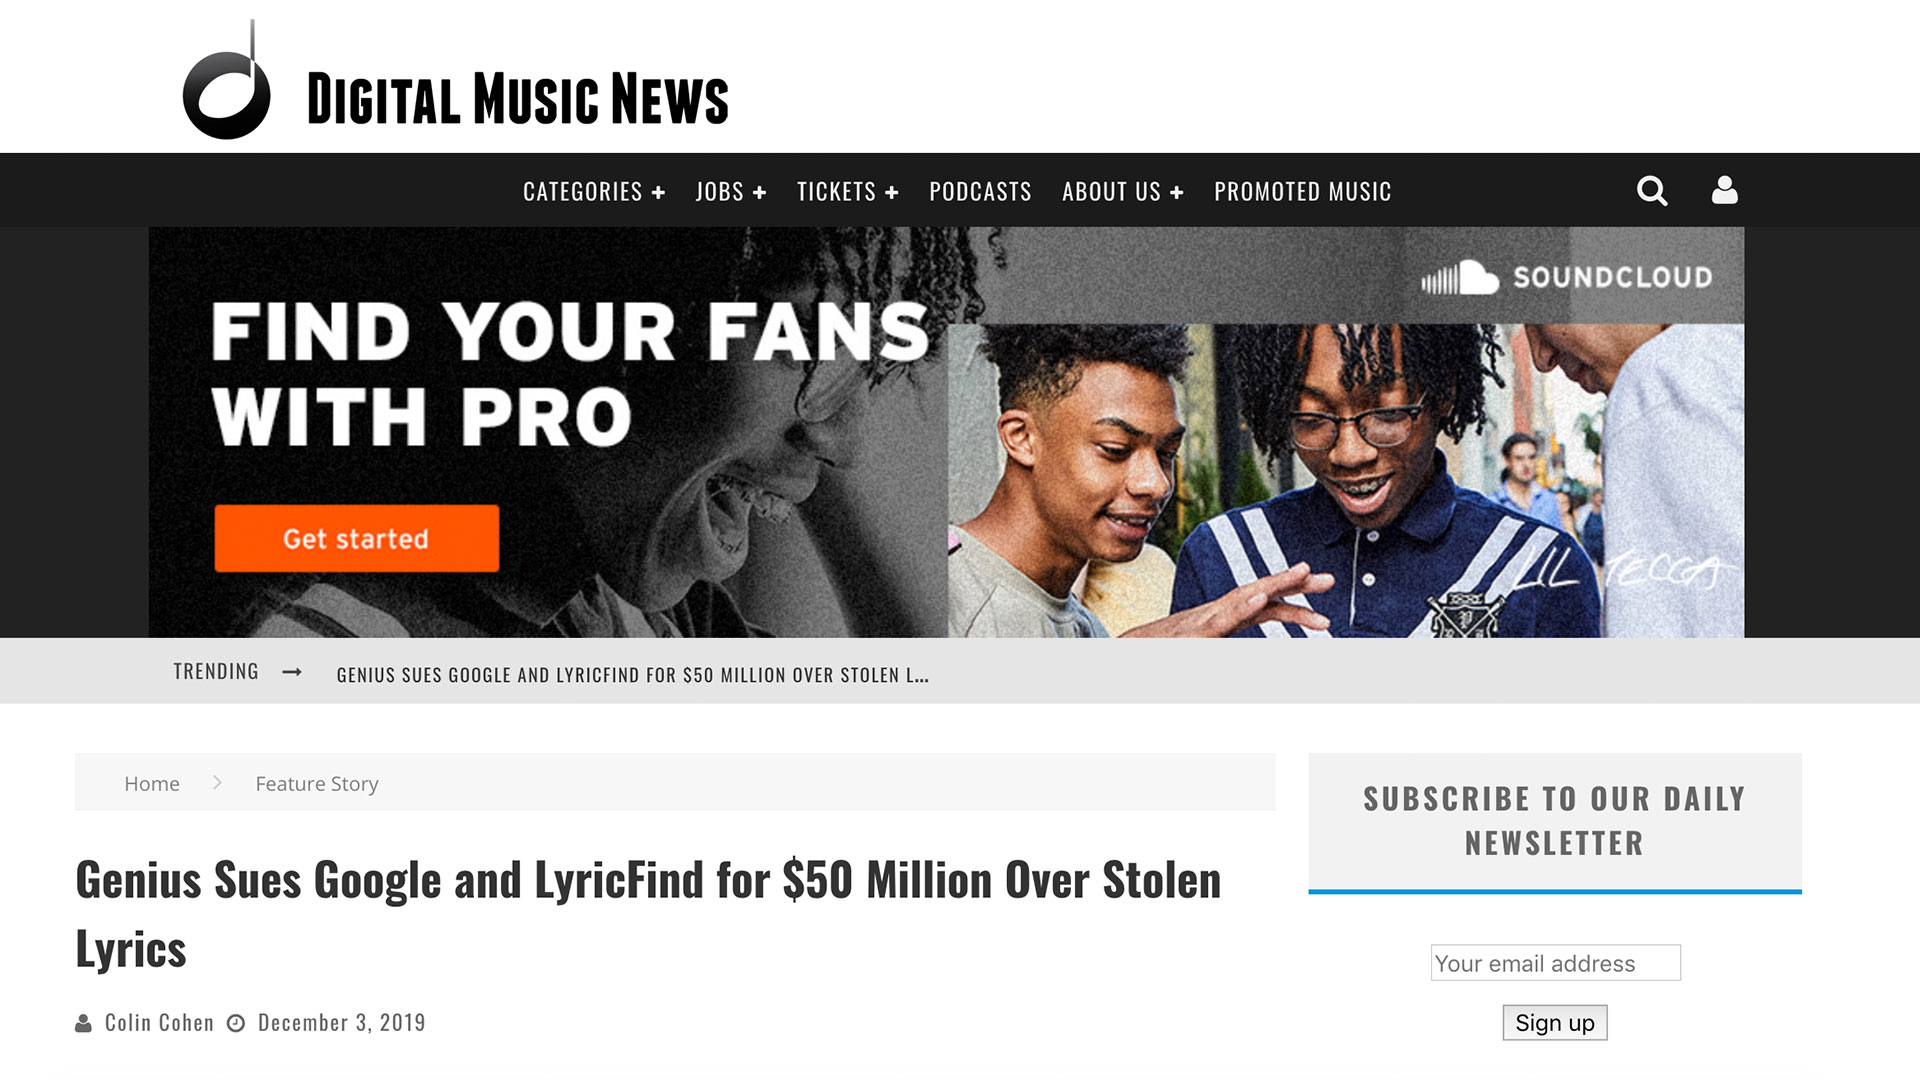 Fairness Rocks News Genius Sues Google and LyricFind for $50 Million Over Stolen Lyrics